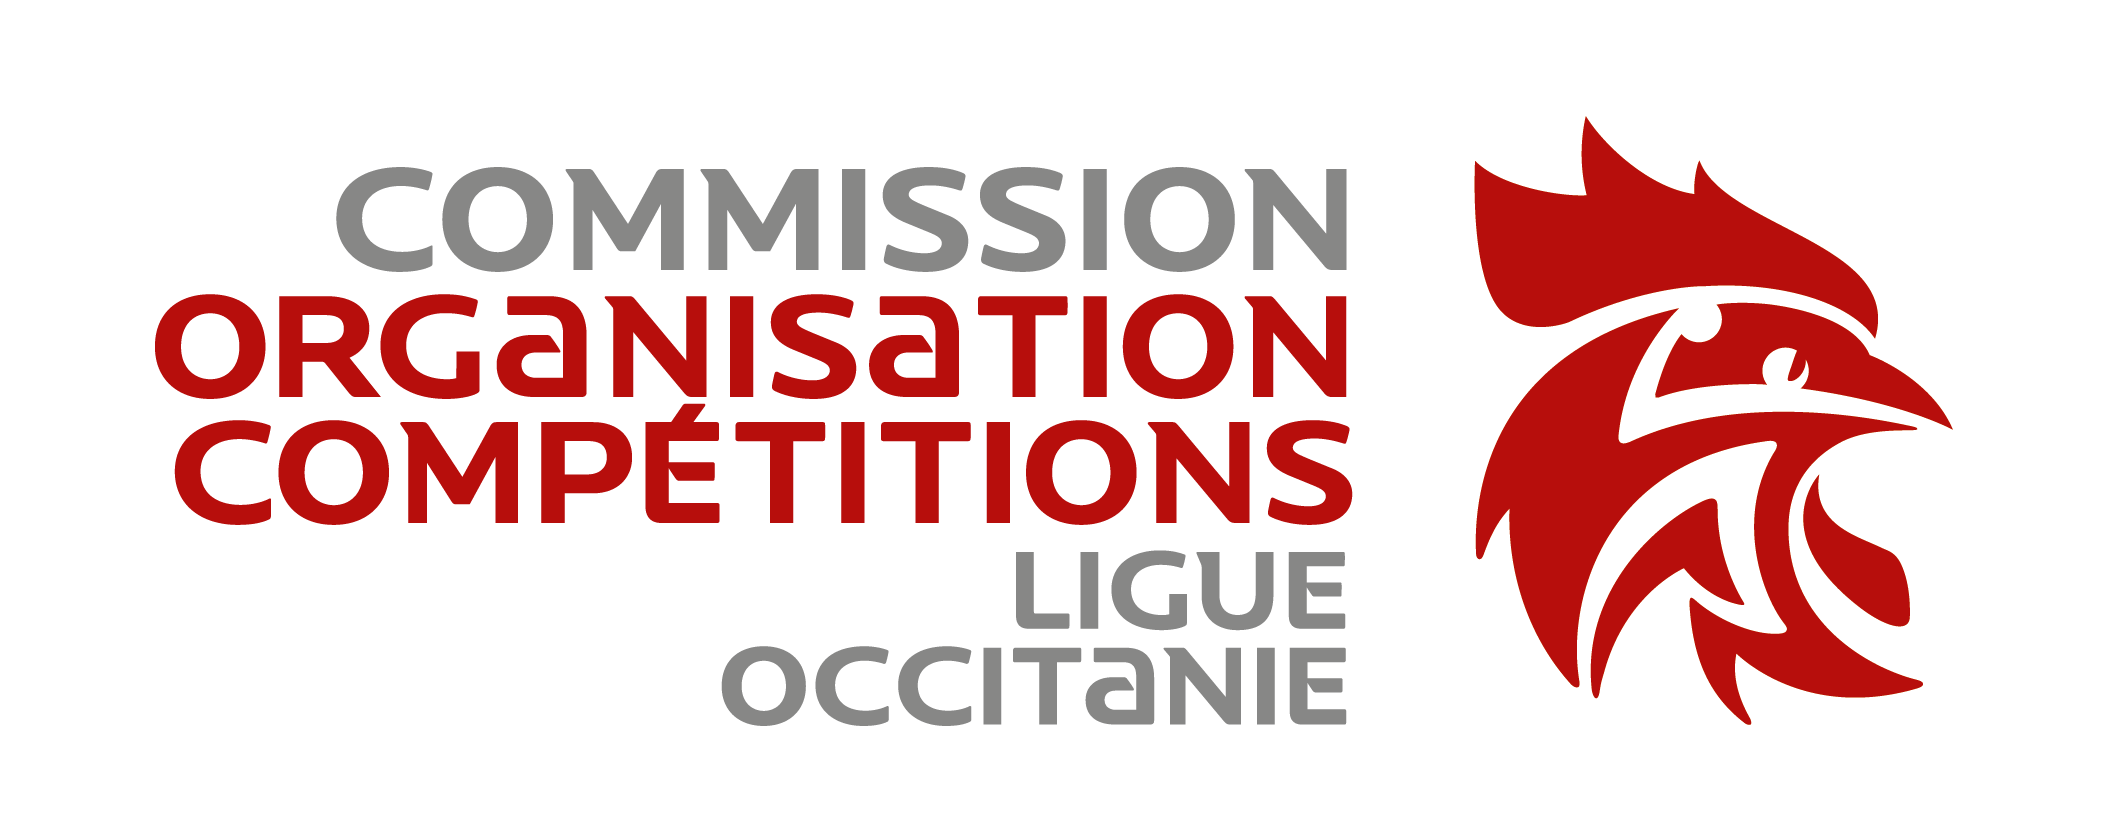 Commission Organisation